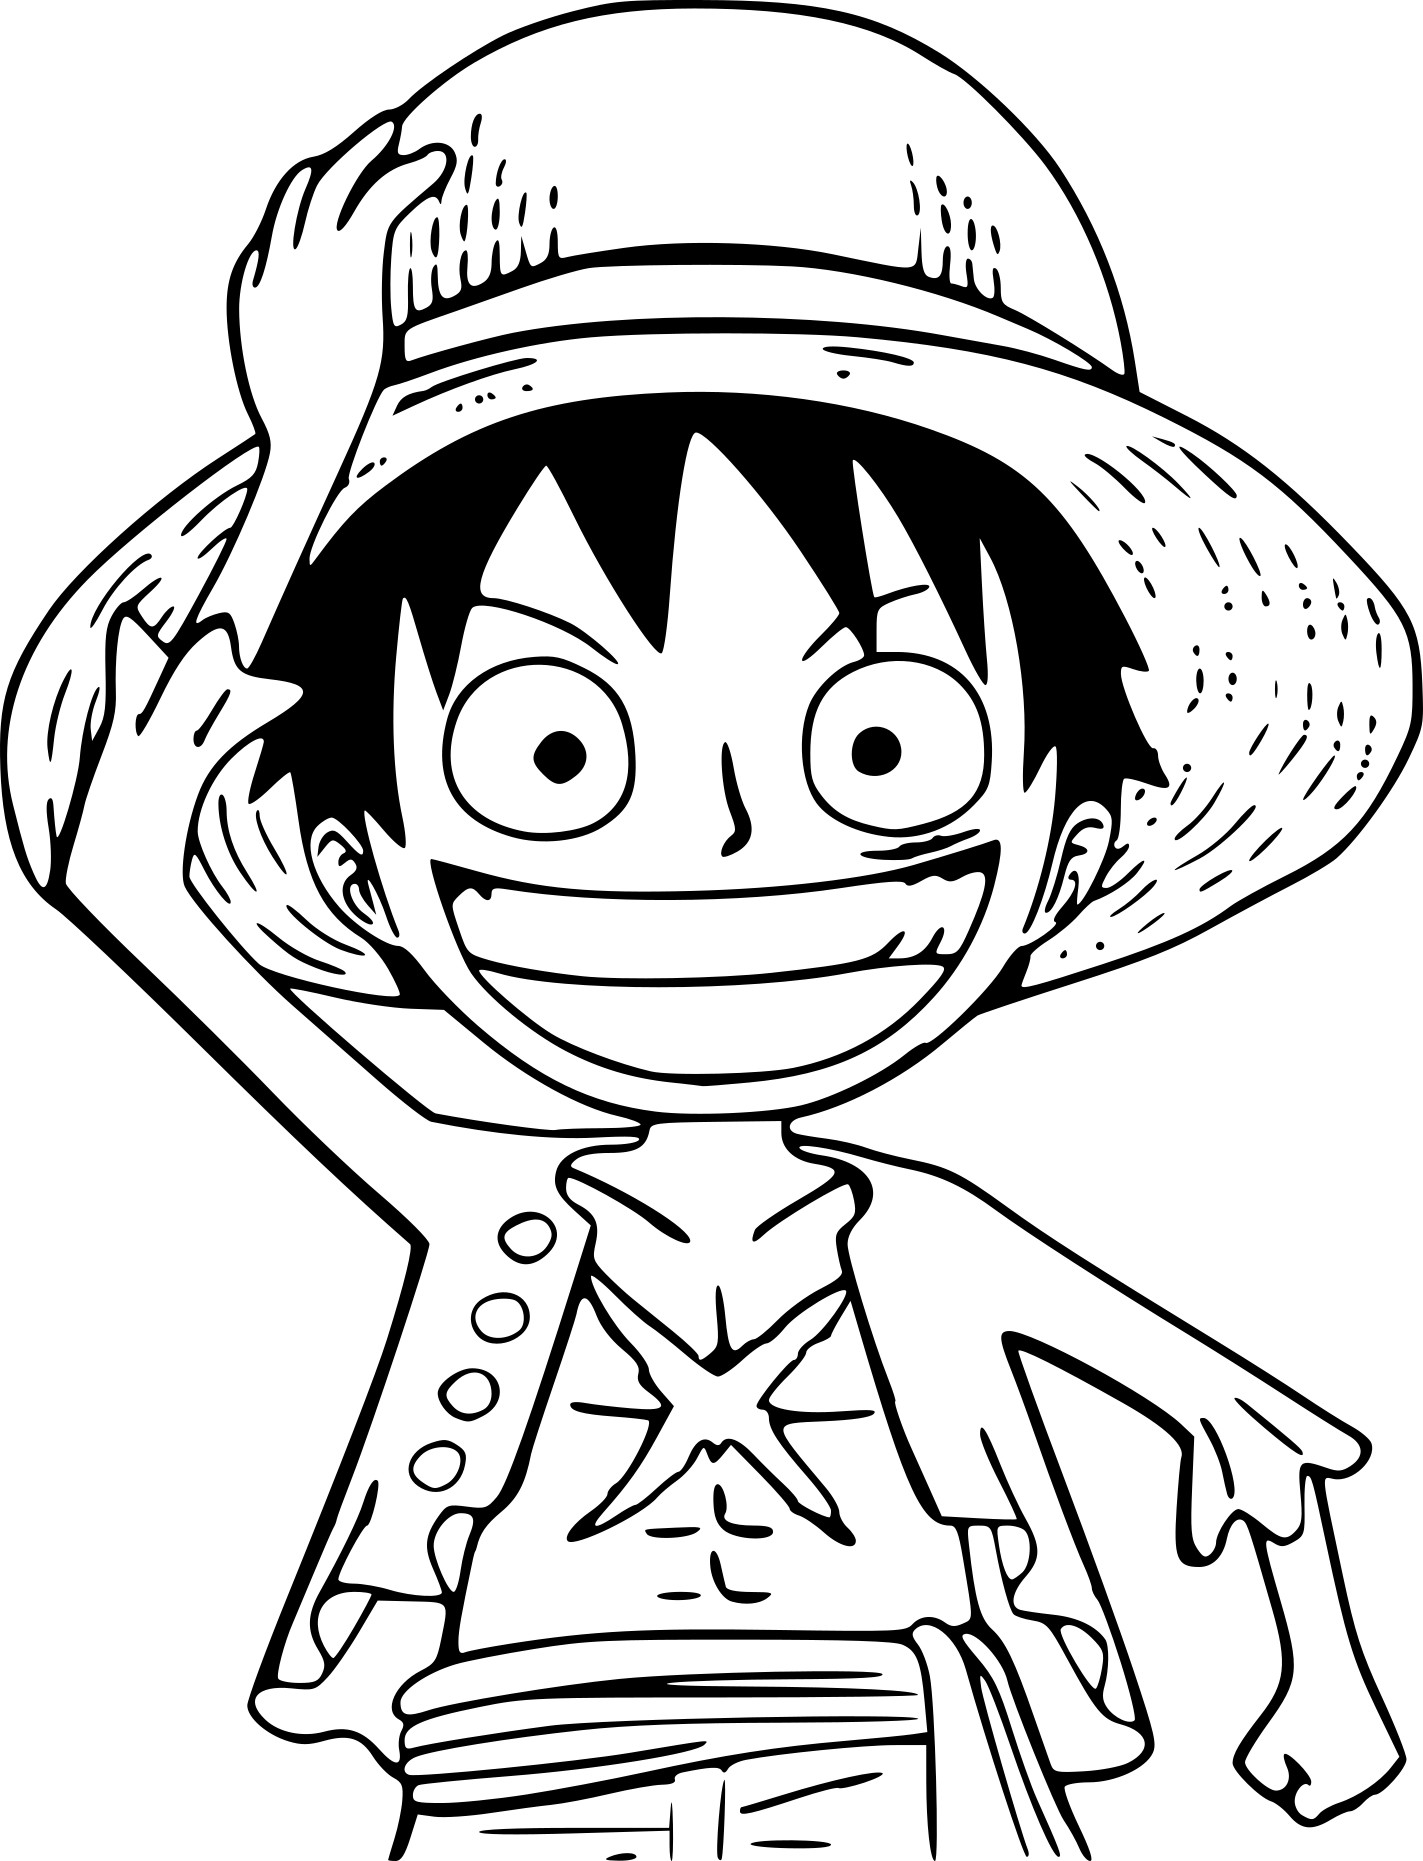 Coloriage petit one piece imprimer - Coloriage one peace ...